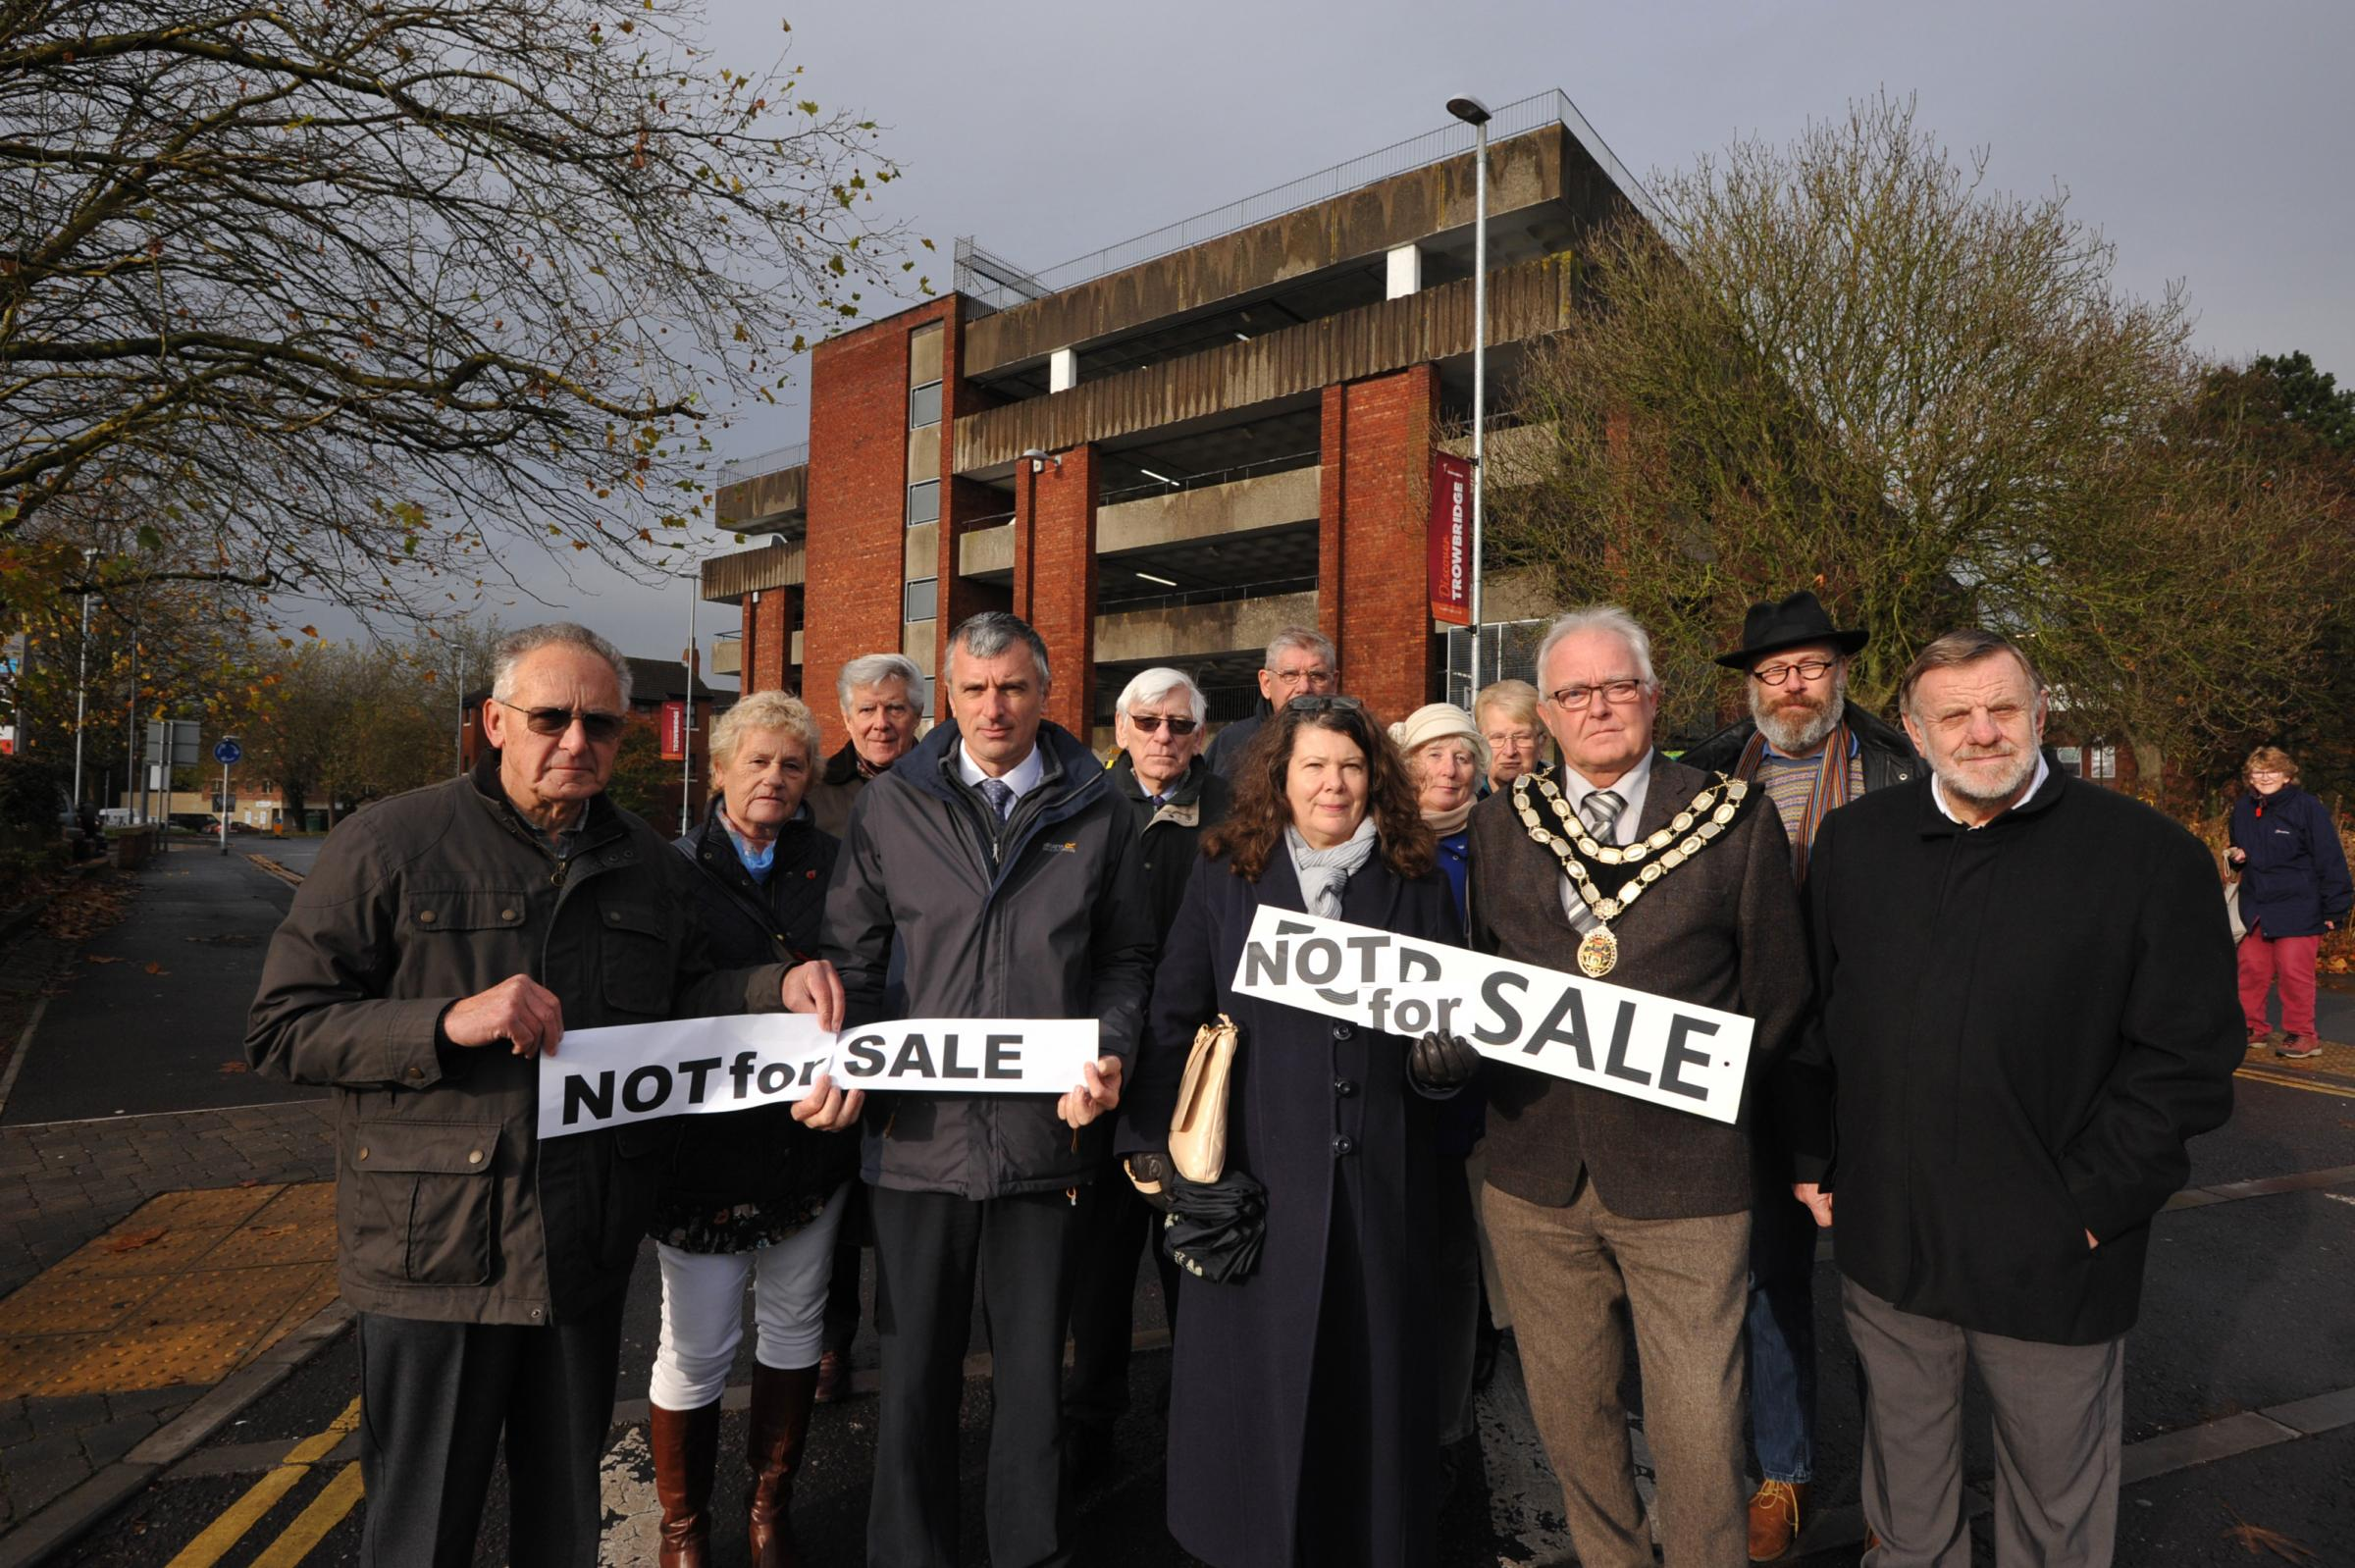 Multi Storey Protest.Councillors and Residents  protest about the Wiltshire County proposal to sell the Multi Storey car park despite the covenant.. Photo Trevor Porter 60049 3..